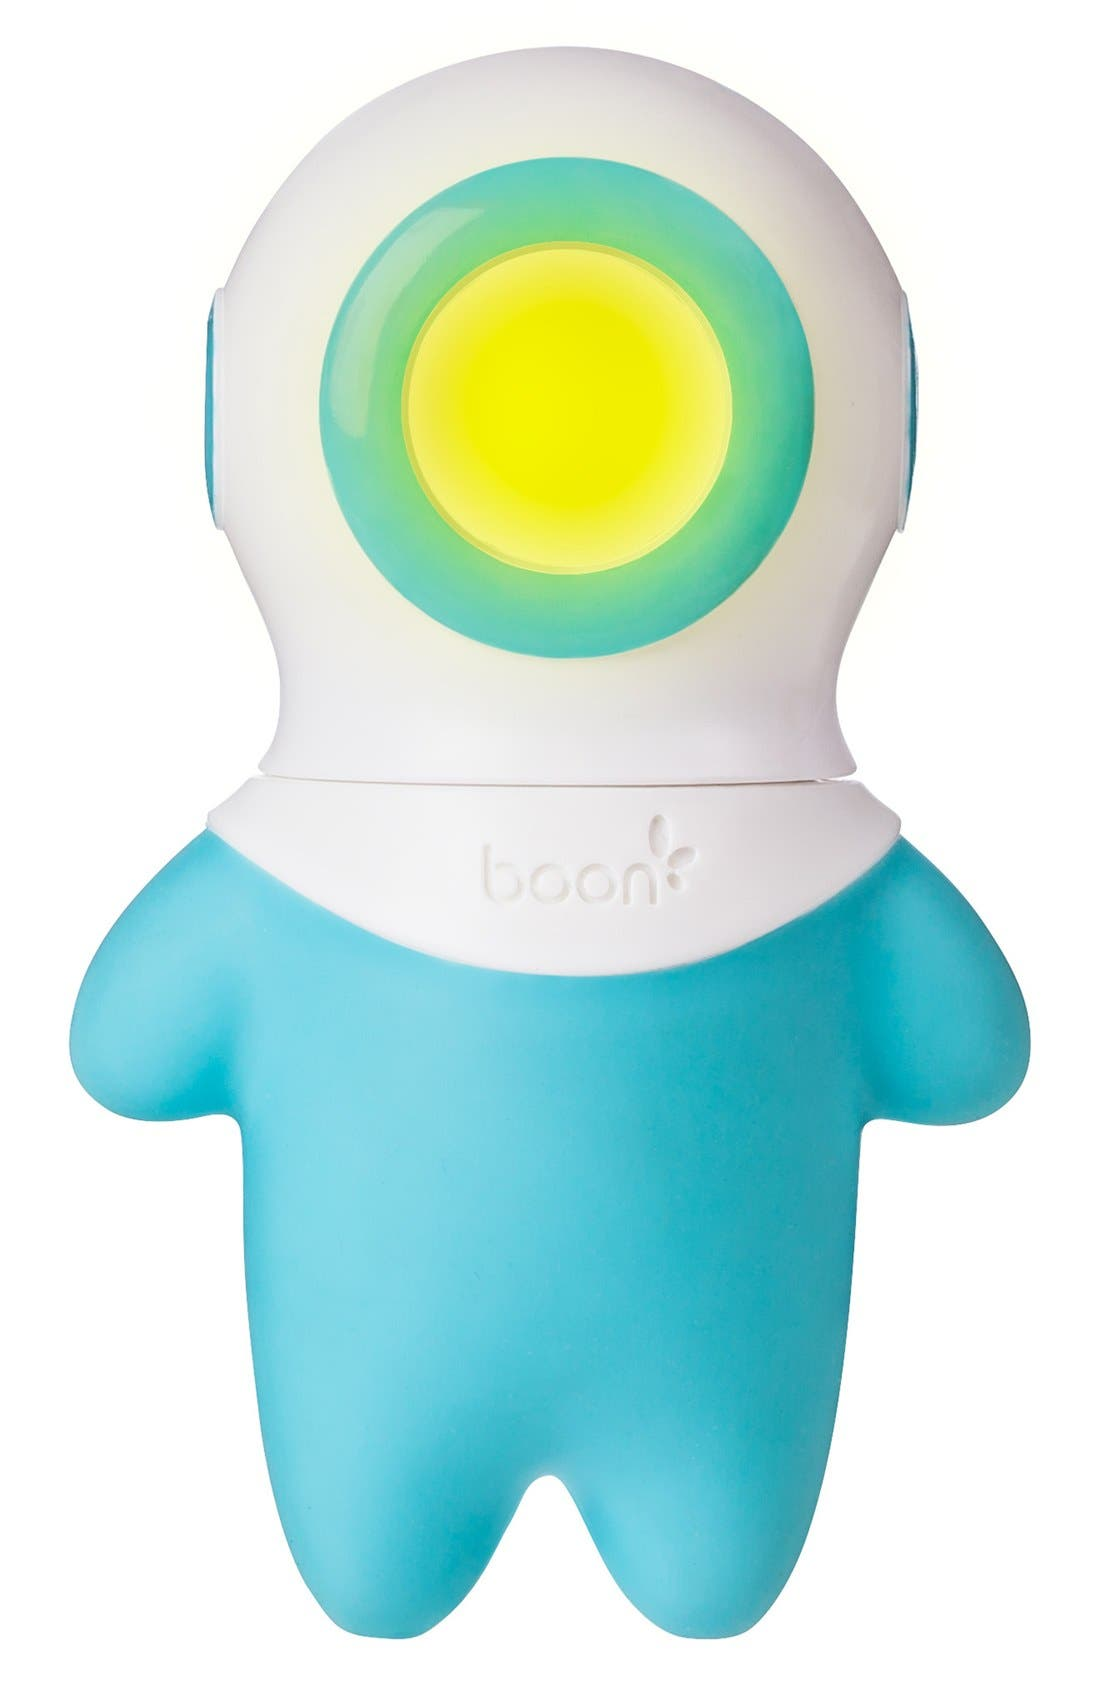 Boon 'Marco' Light-Up Bath Toy